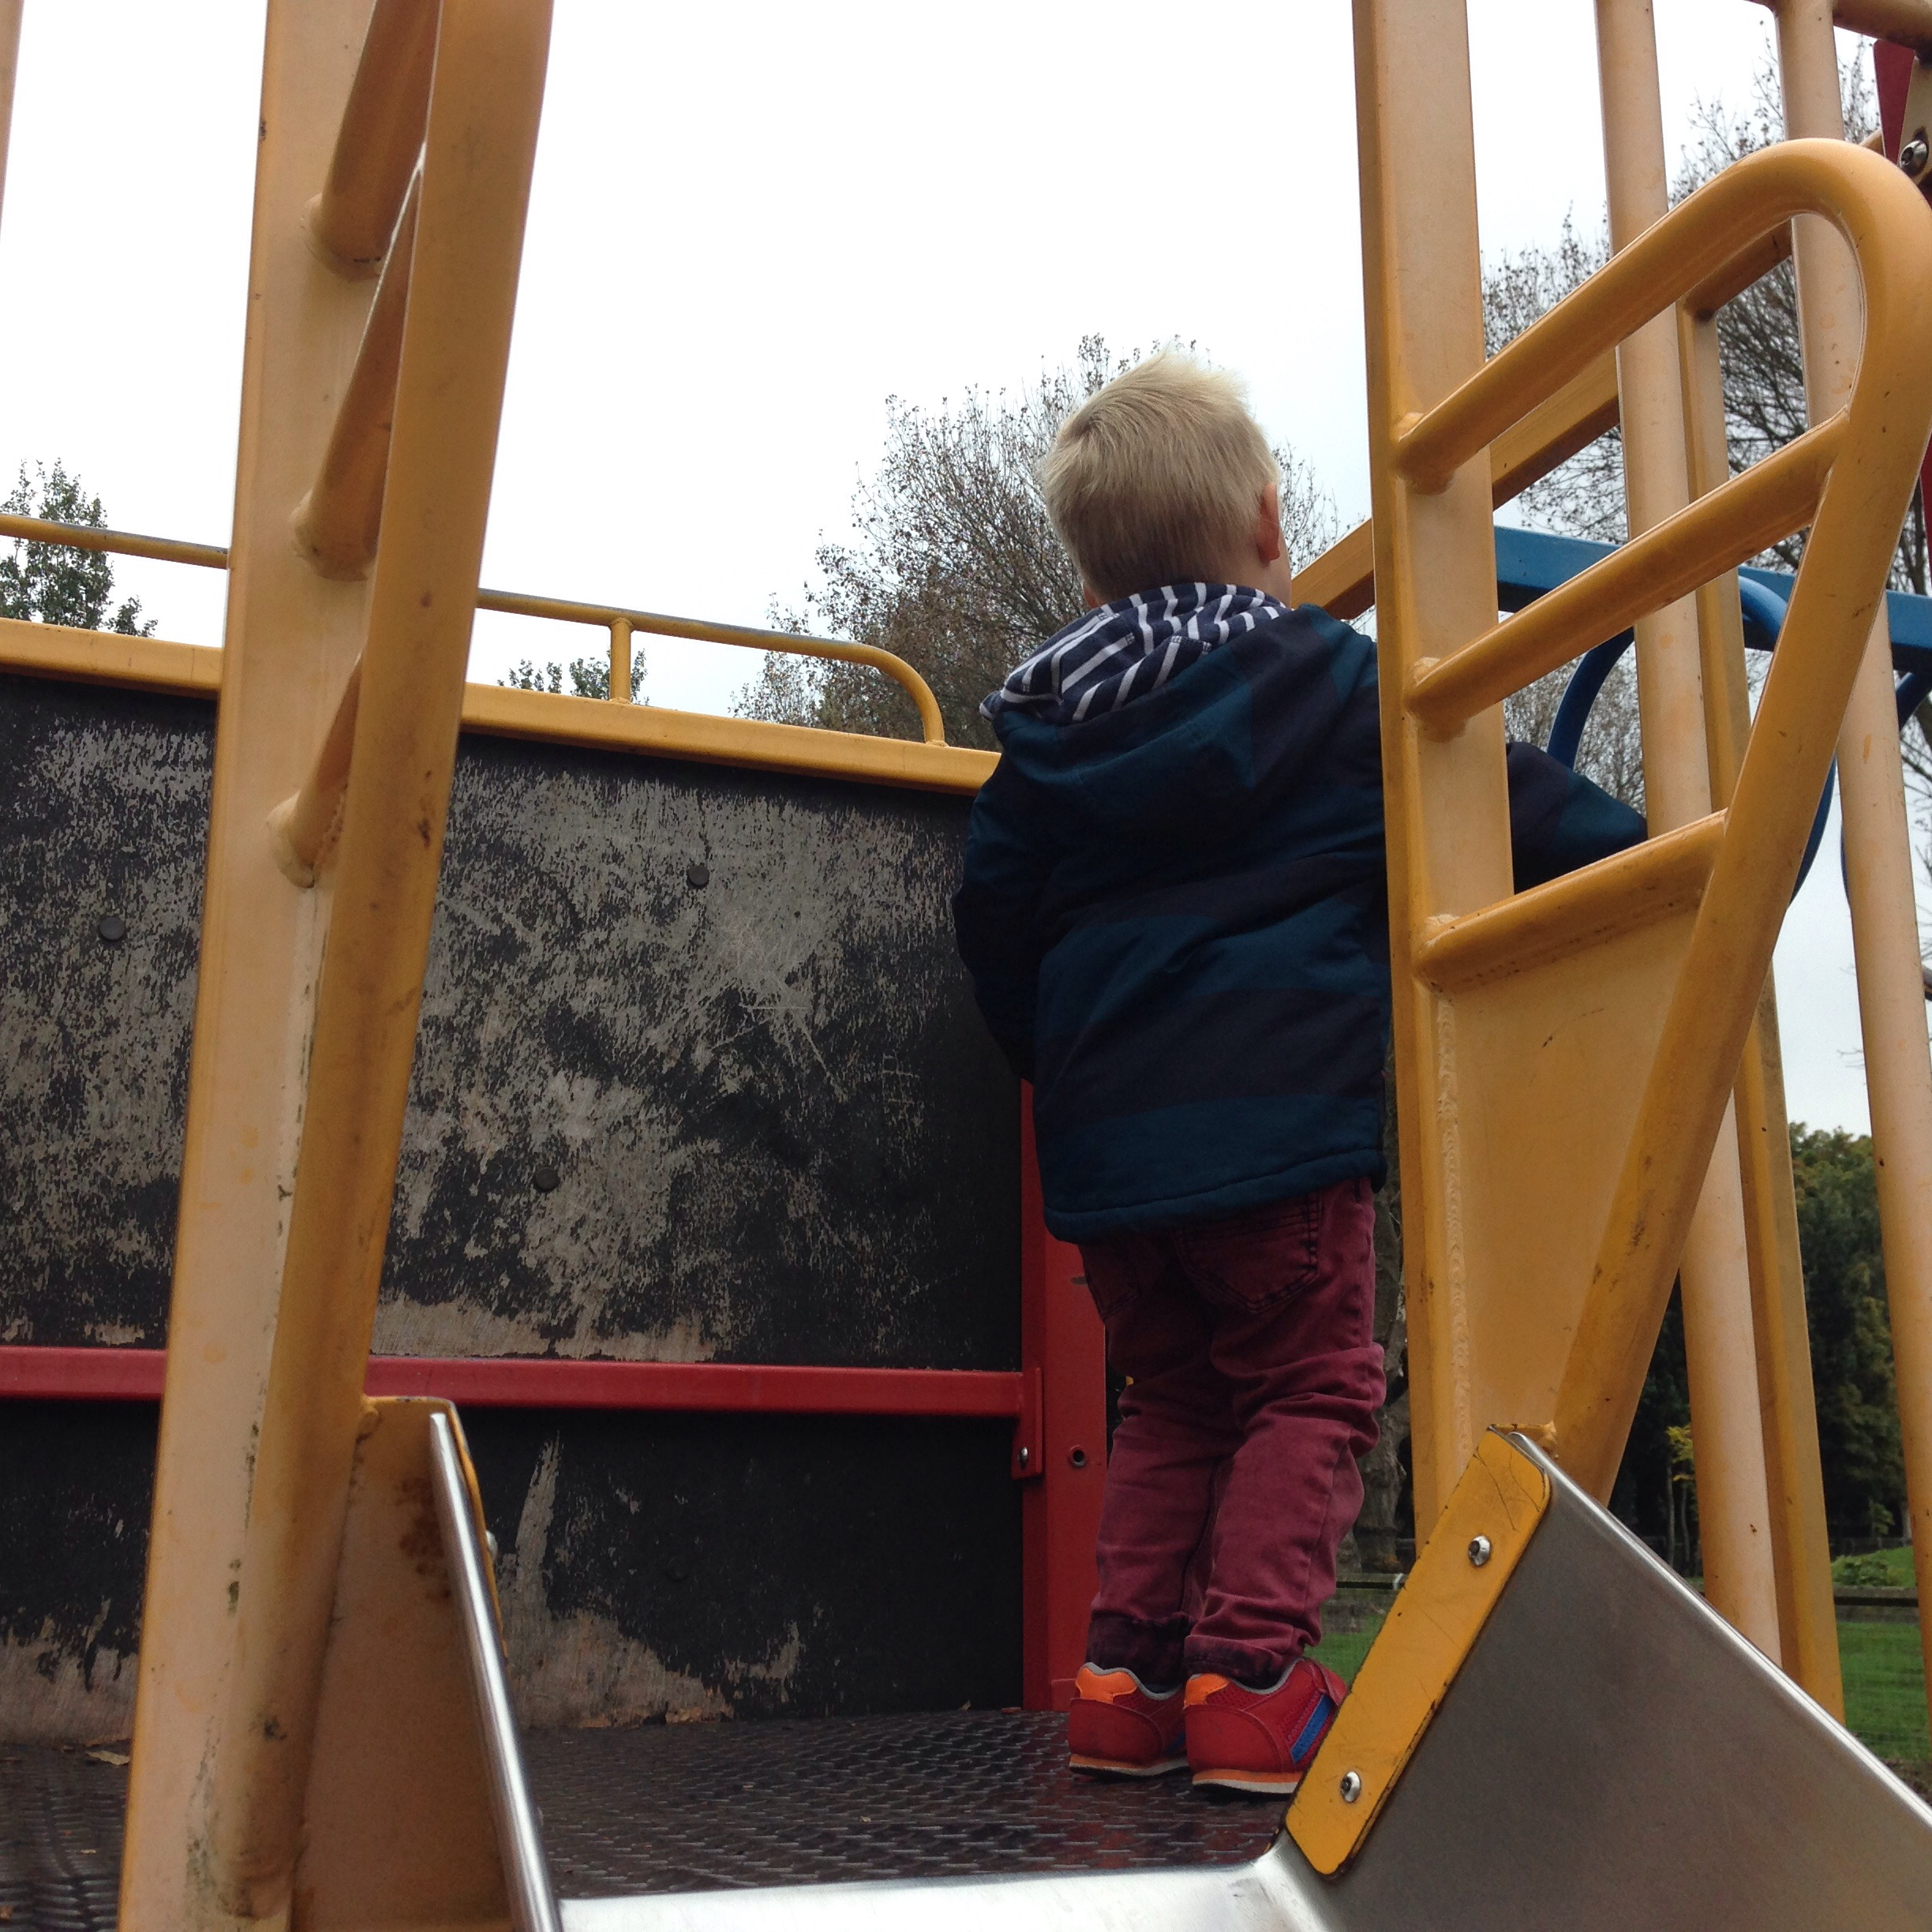 churchil playing fields playground in north tyneside